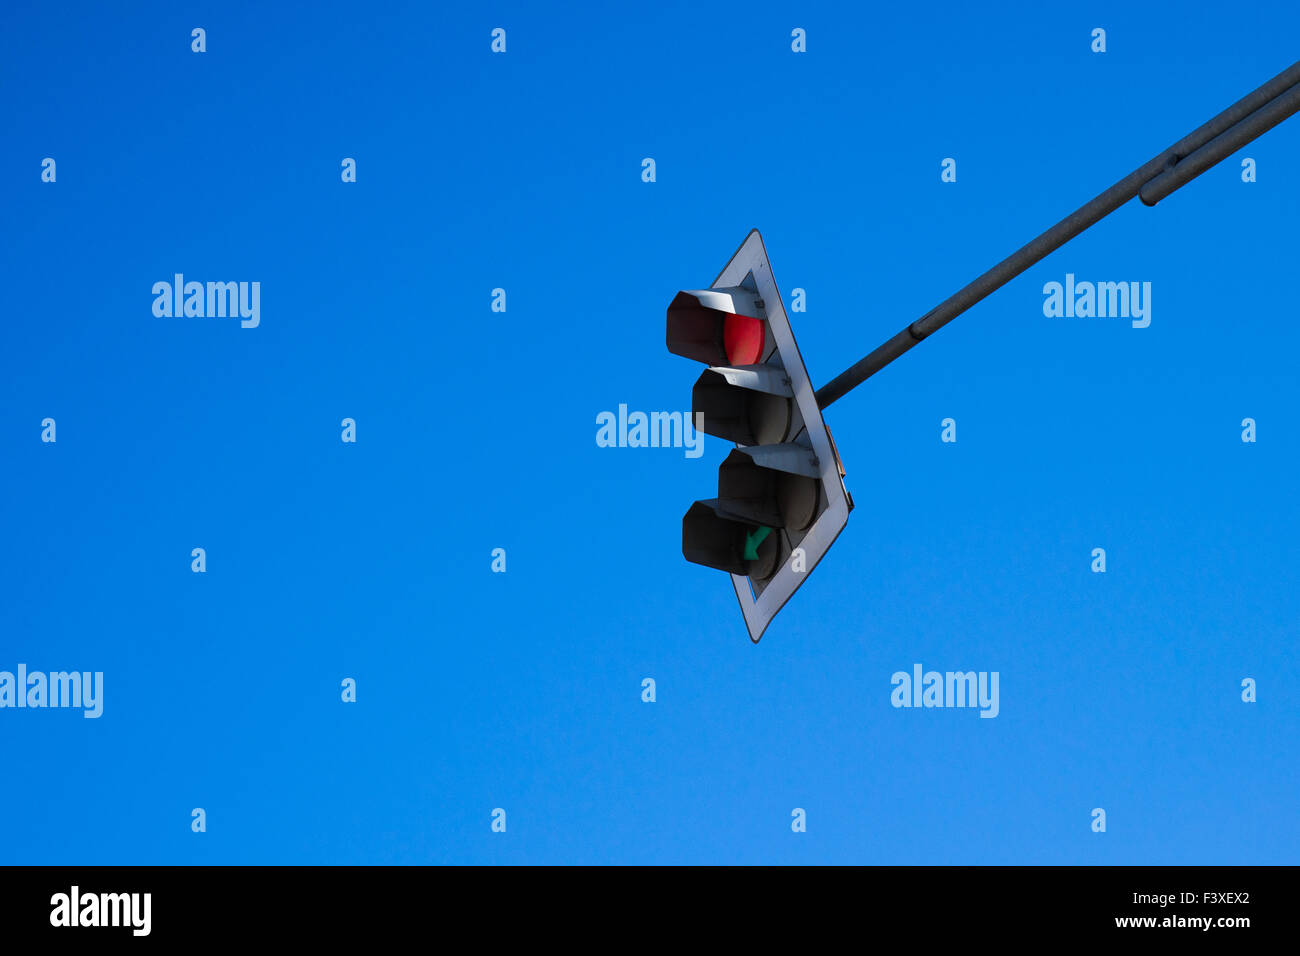 Traffic light. Red light and green arrow - Stock Image